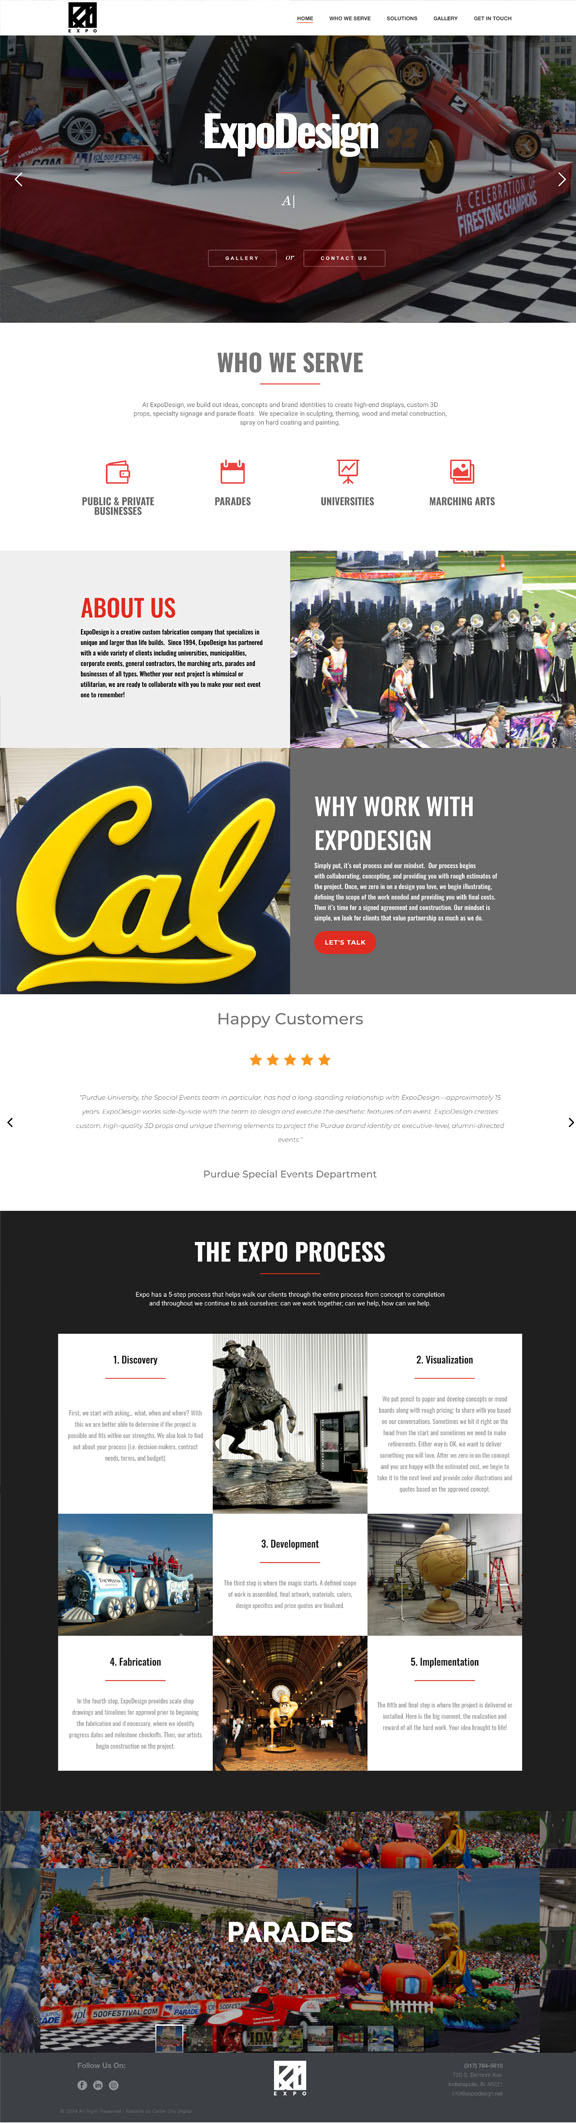 expo design website